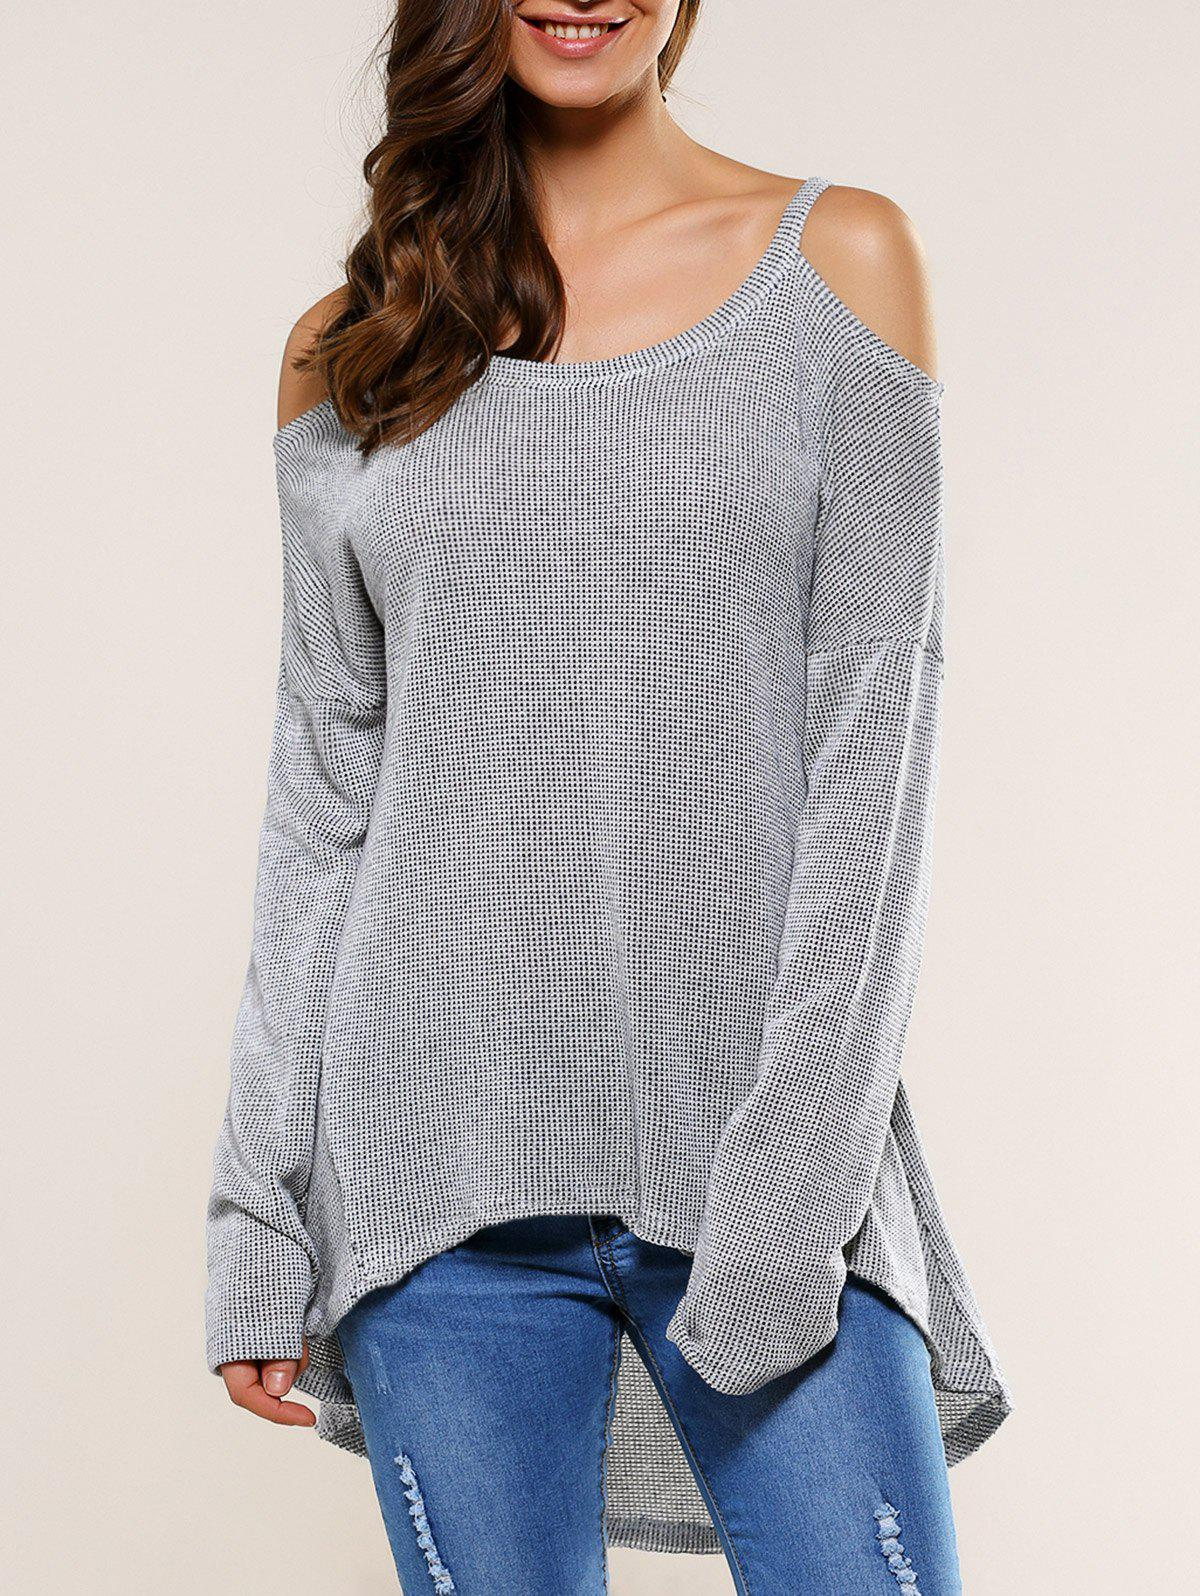 Dew Shoulder High Low Hem Blouse - LIGHT GRAY XL